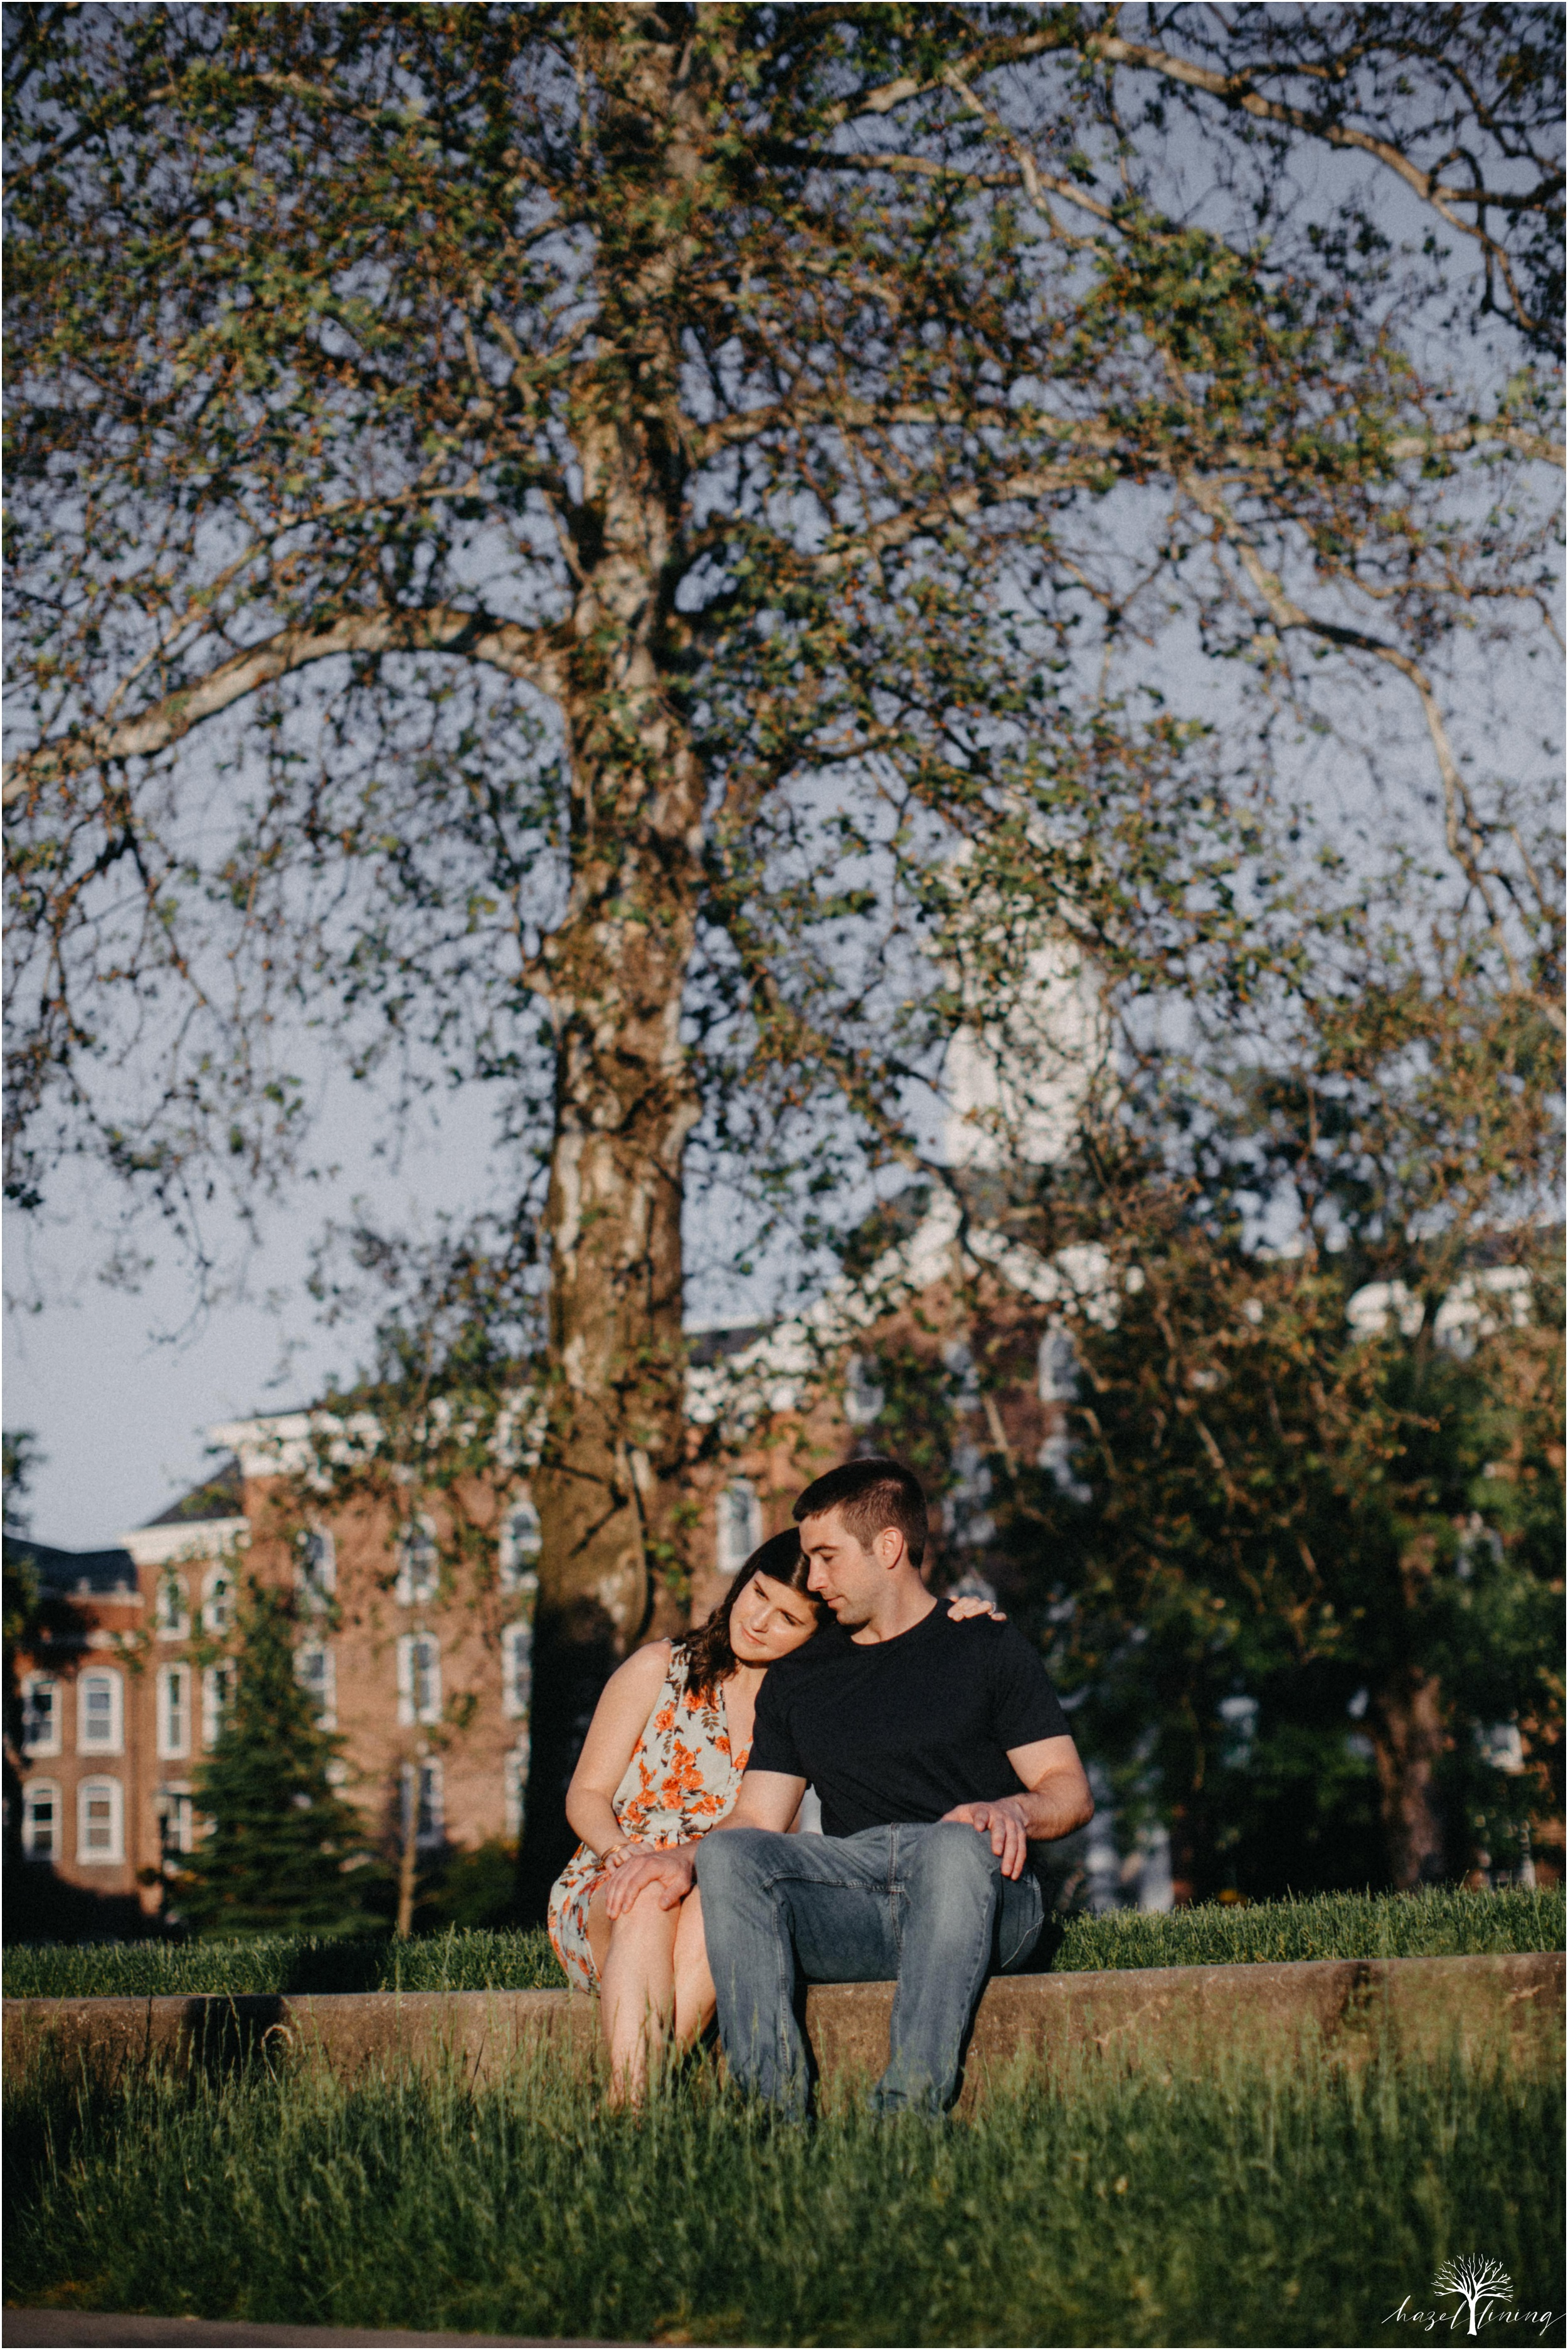 ellyn-jack-kutztown-university-of-pennsylvania-engagement-session-hazel-lining-photography-destination-elopement-wedding-engagement-photography_0257.jpg